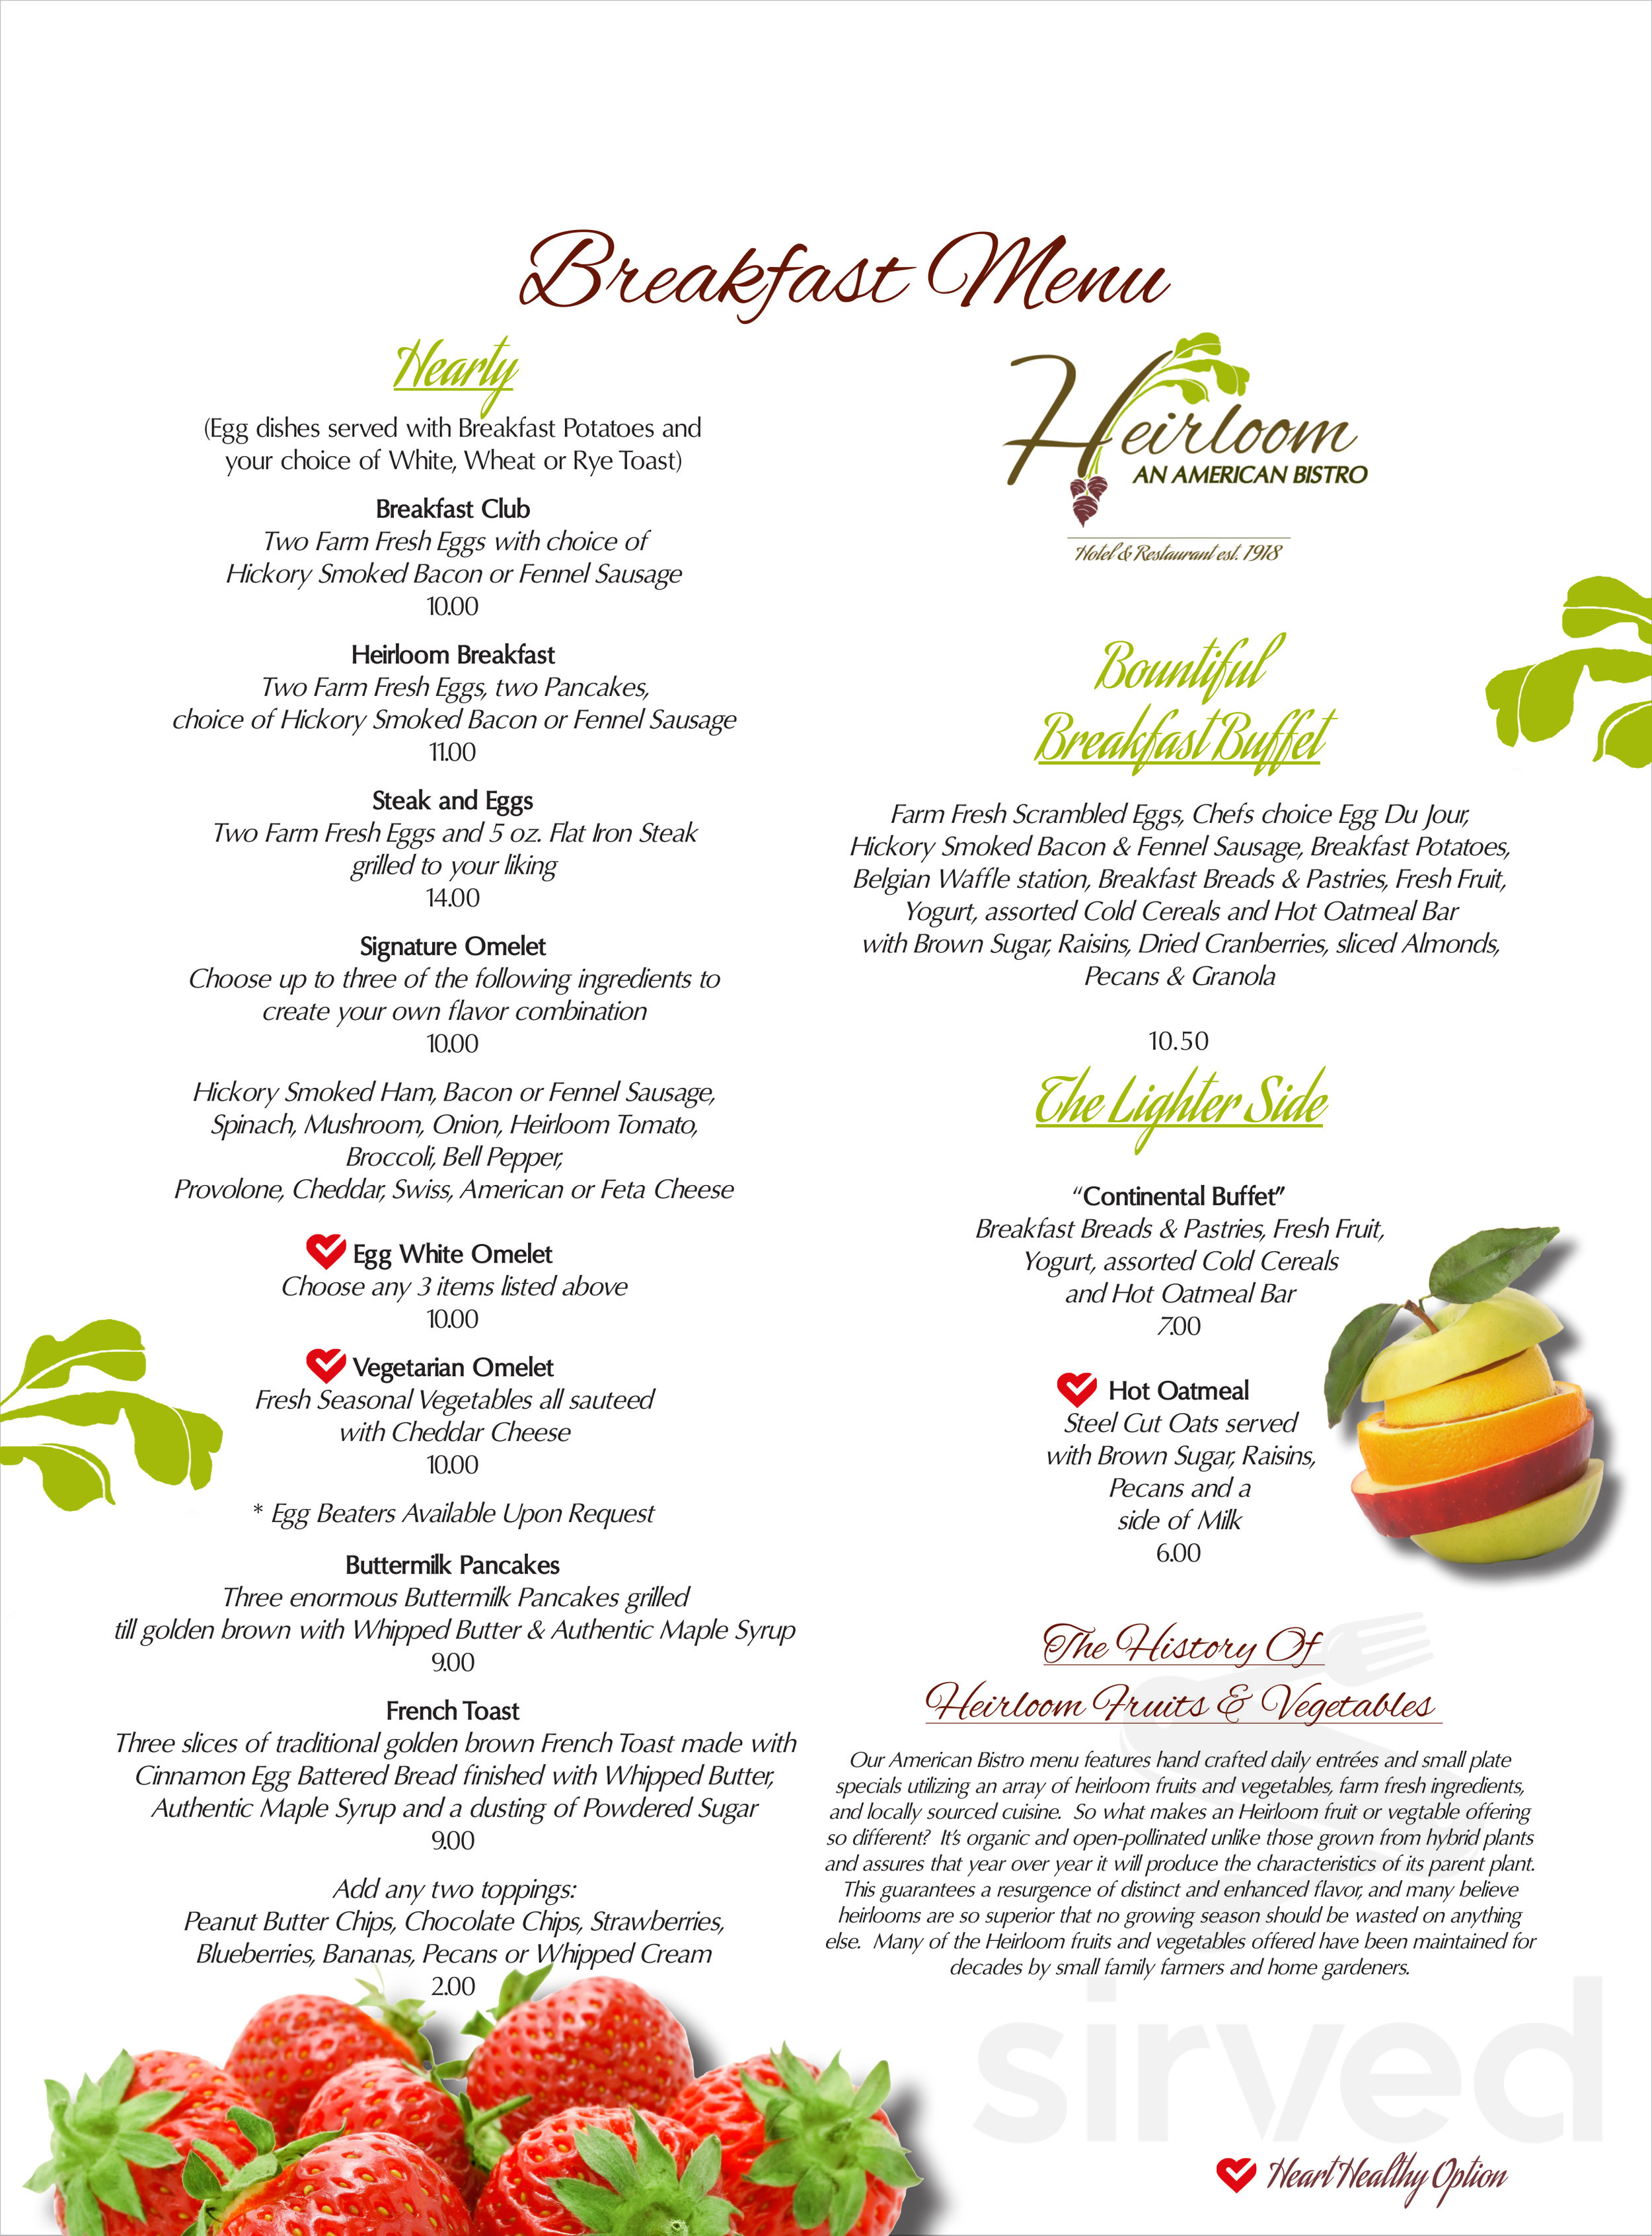 Astonishing Menu For Heirloom An American Cafe In Camp Hill Pennsylvania Download Free Architecture Designs Photstoregrimeyleaguecom